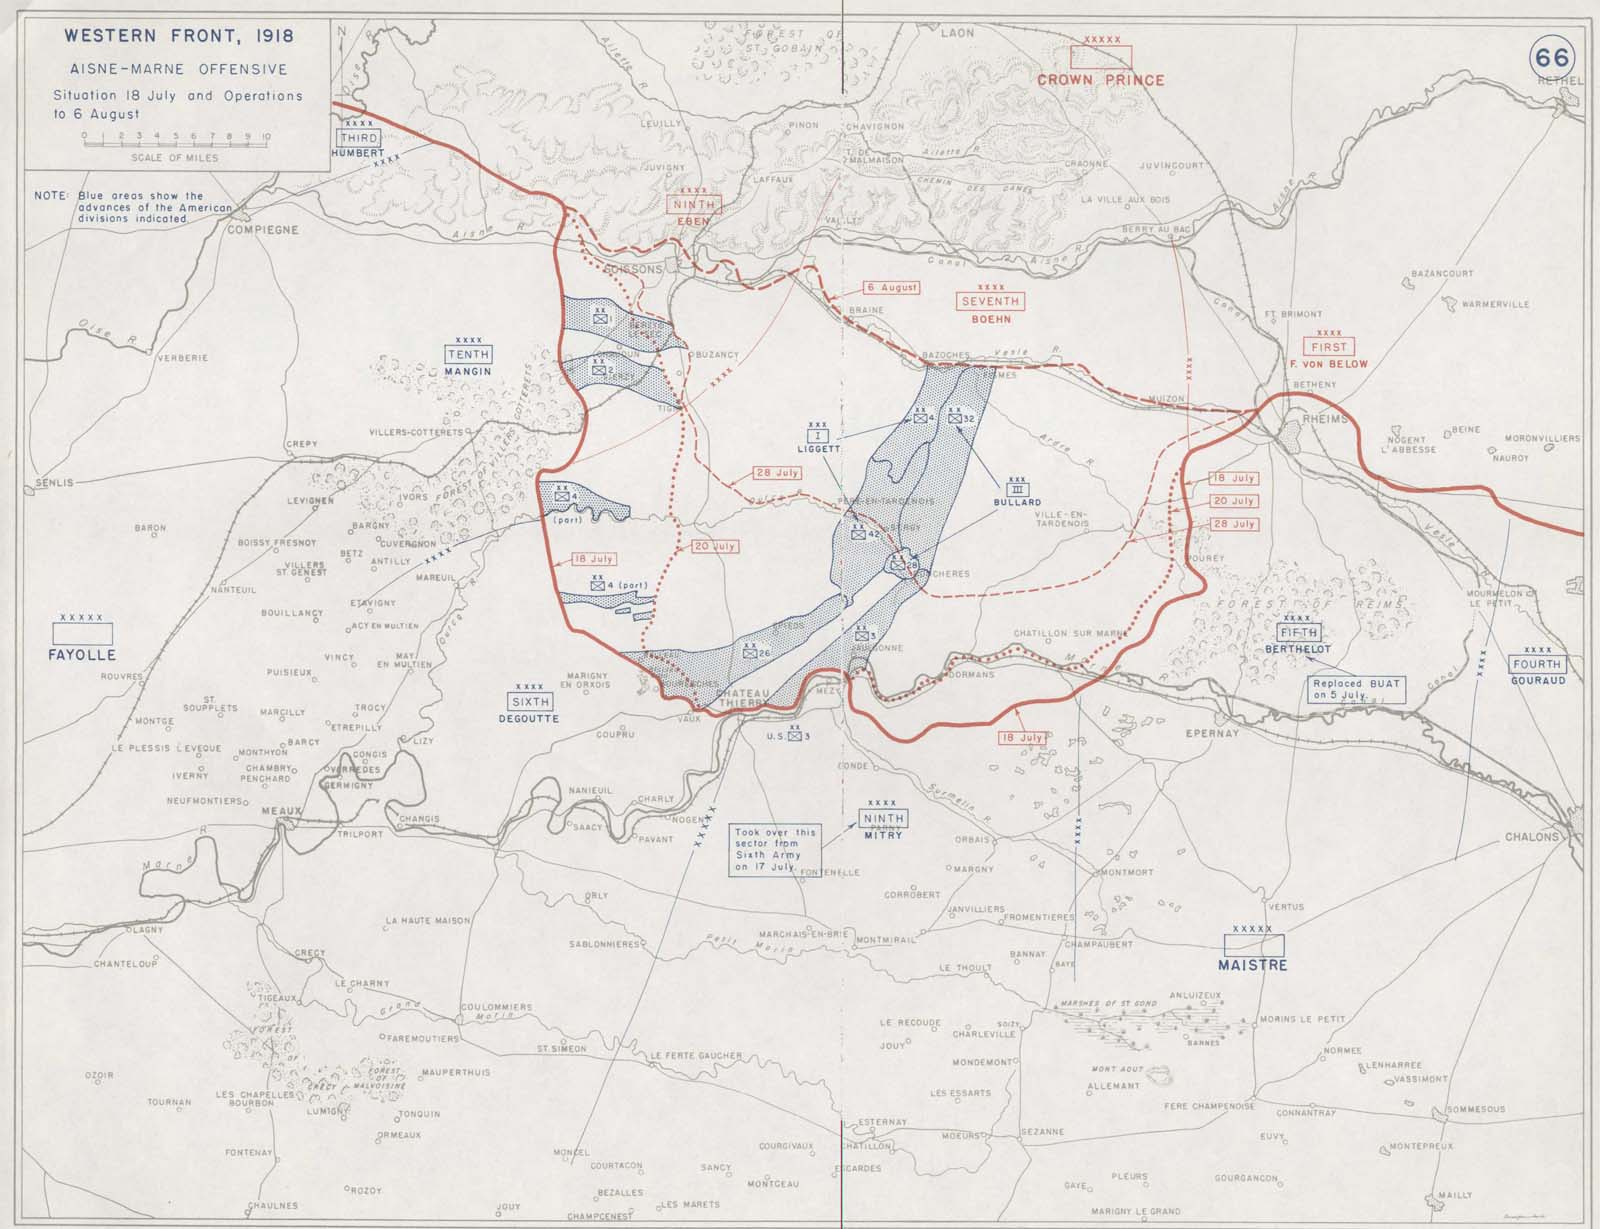 First World War.com - Battlefield Maps: Western Front on battle of verdun map wwi, downloadable maps of battle wwi, allied powers map wwi, battle of tannenberg map wwi,